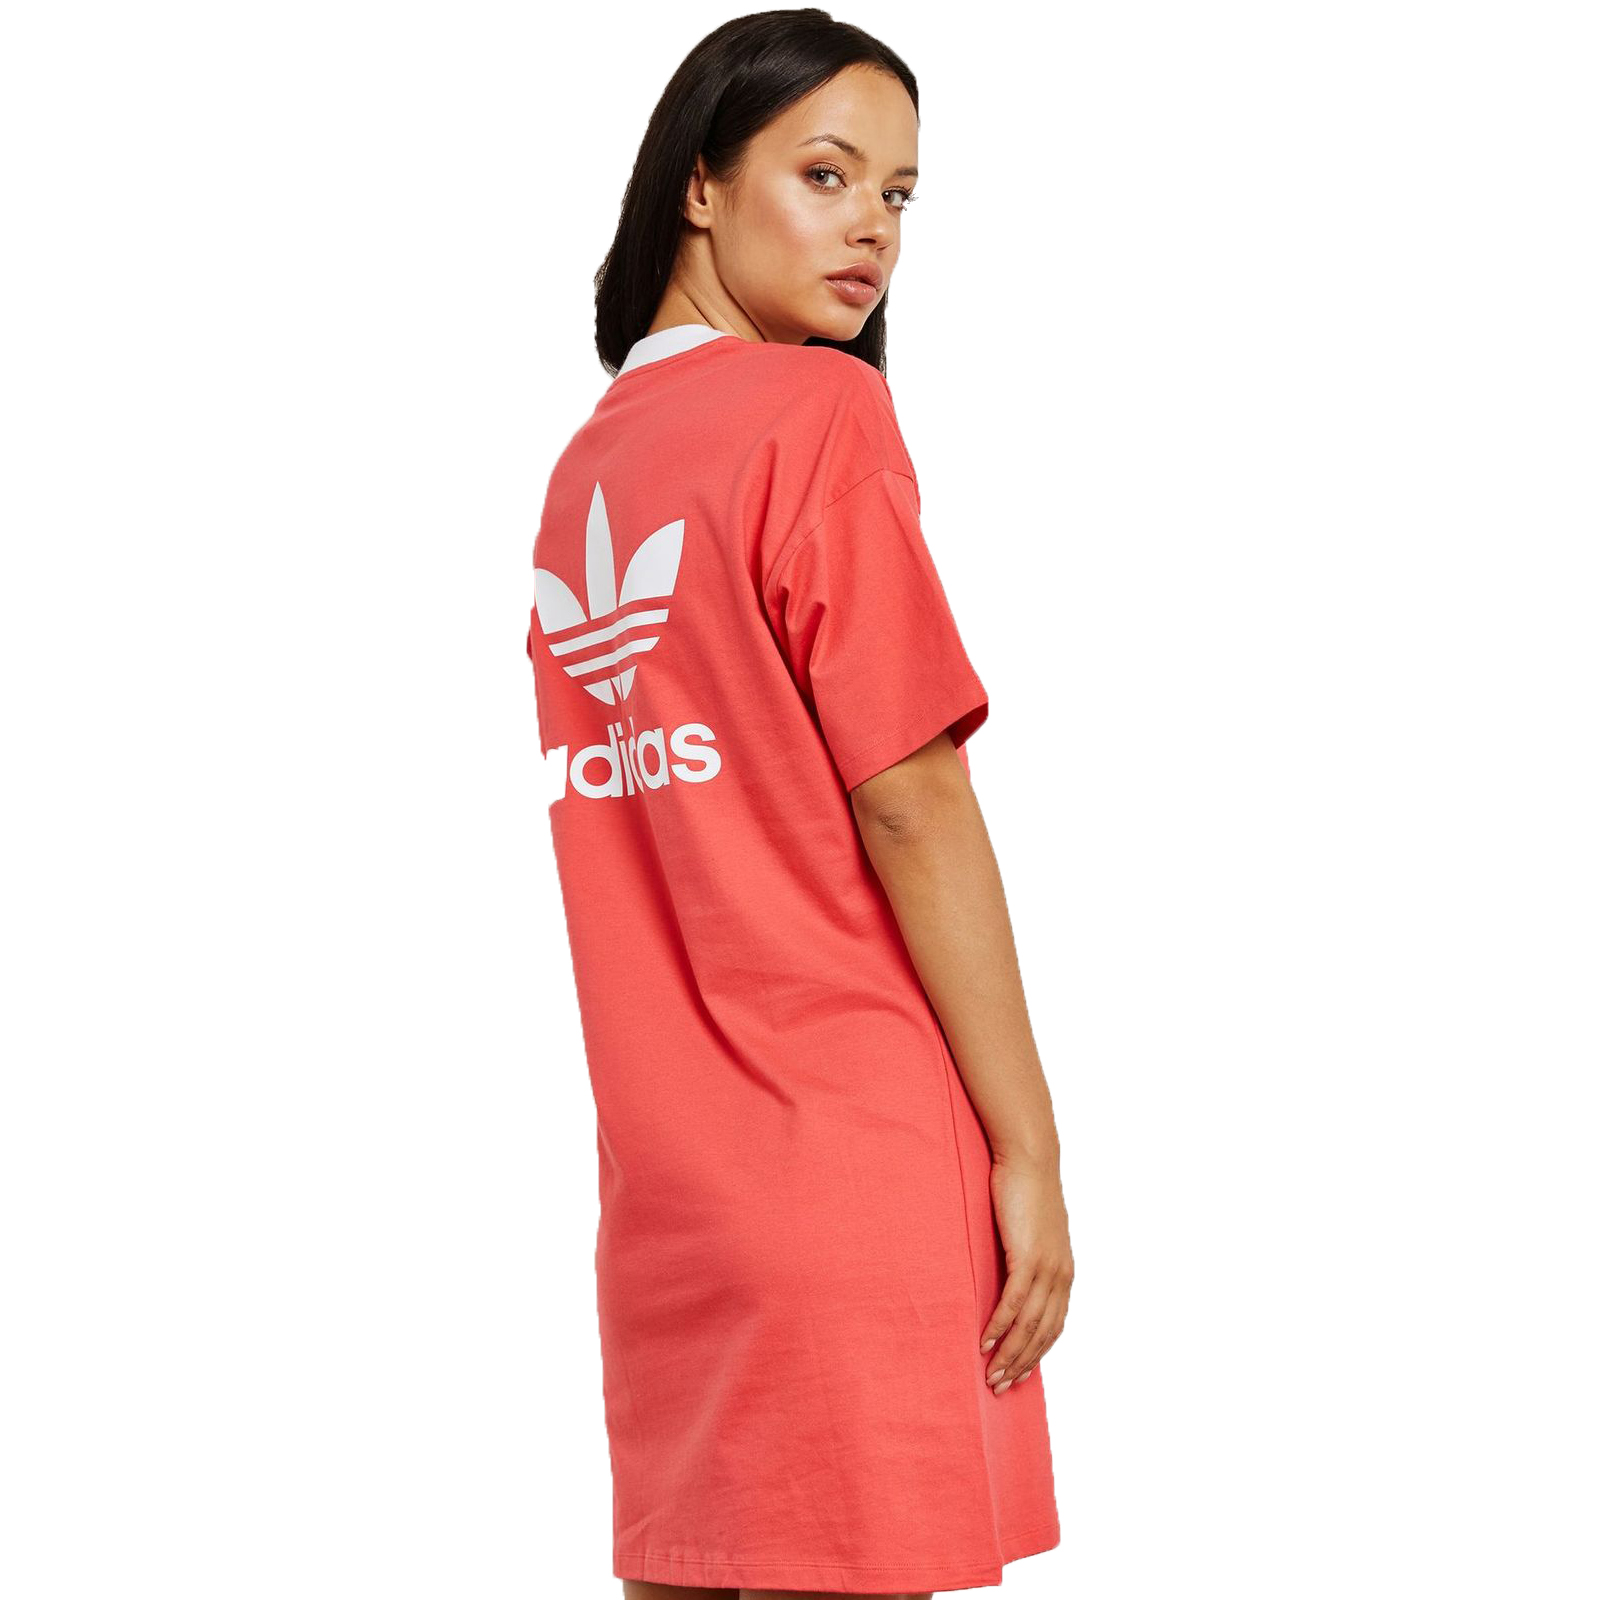 Details about Adidas Originals Trefoil Tee Dress Dress Long Shirt Summer Dress Core Pink Red show original title